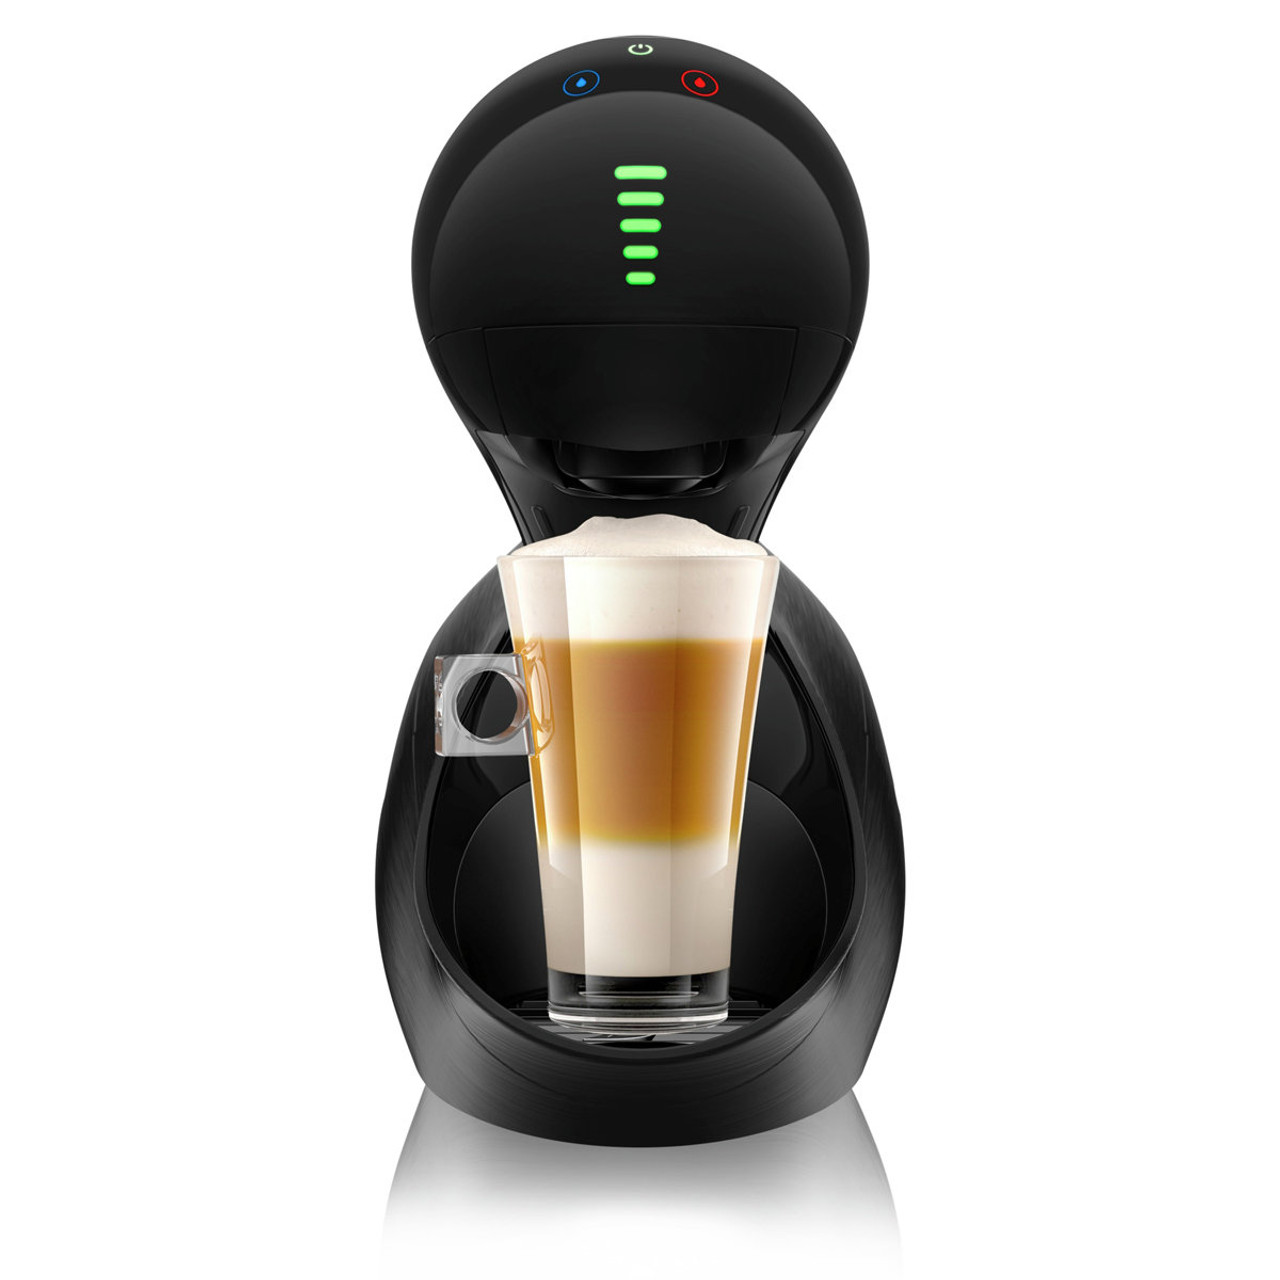 Breville NCU800BBK Dolce Gusto Movenza Capsule Coffee Machine - RRP $250.00